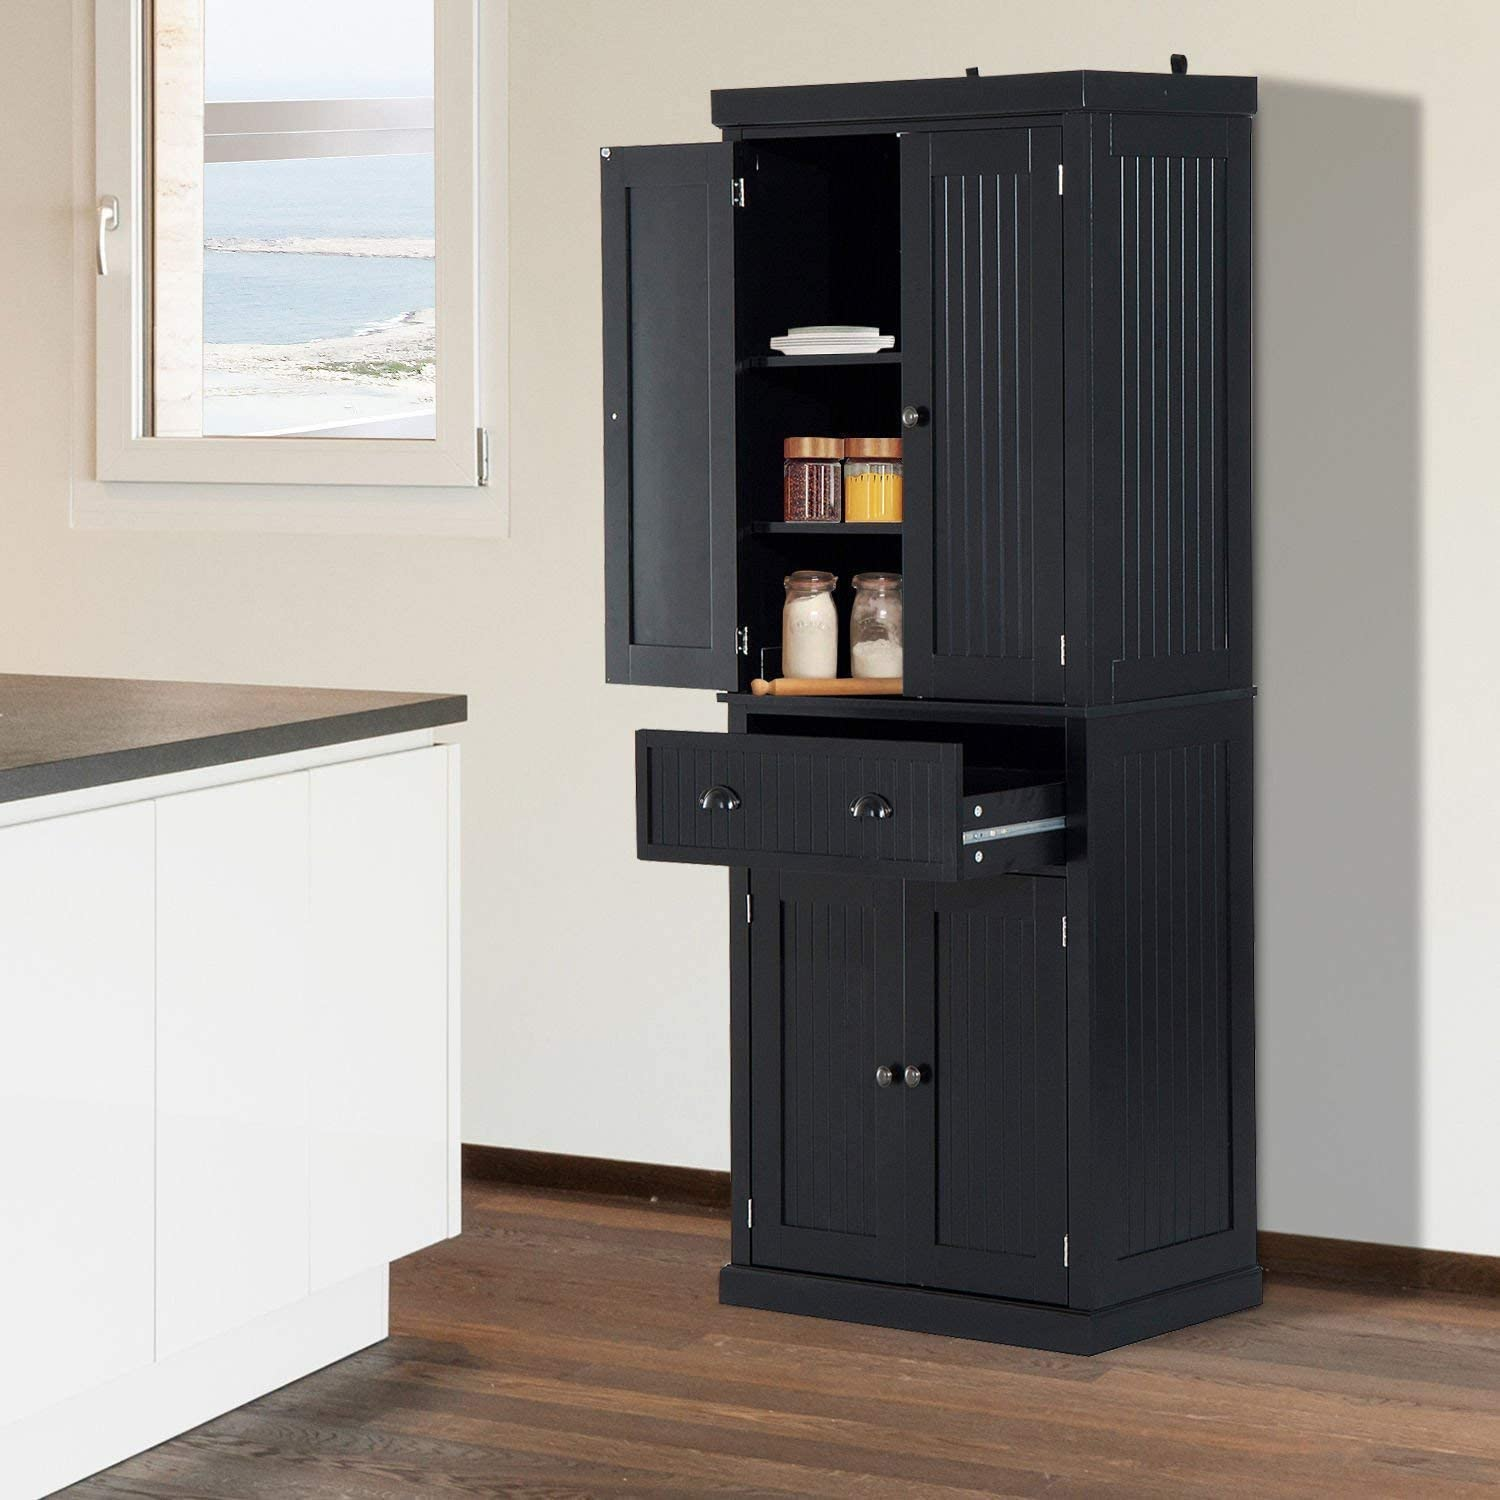 Festnight Tall Kitchen Pantry Storage Cabinet Traditional Standing Kitchen Pantry Cupboard Cabinet Black 72u201d  sc 1 st  Amazon.com & Kitchen Pantries | Amazon.com